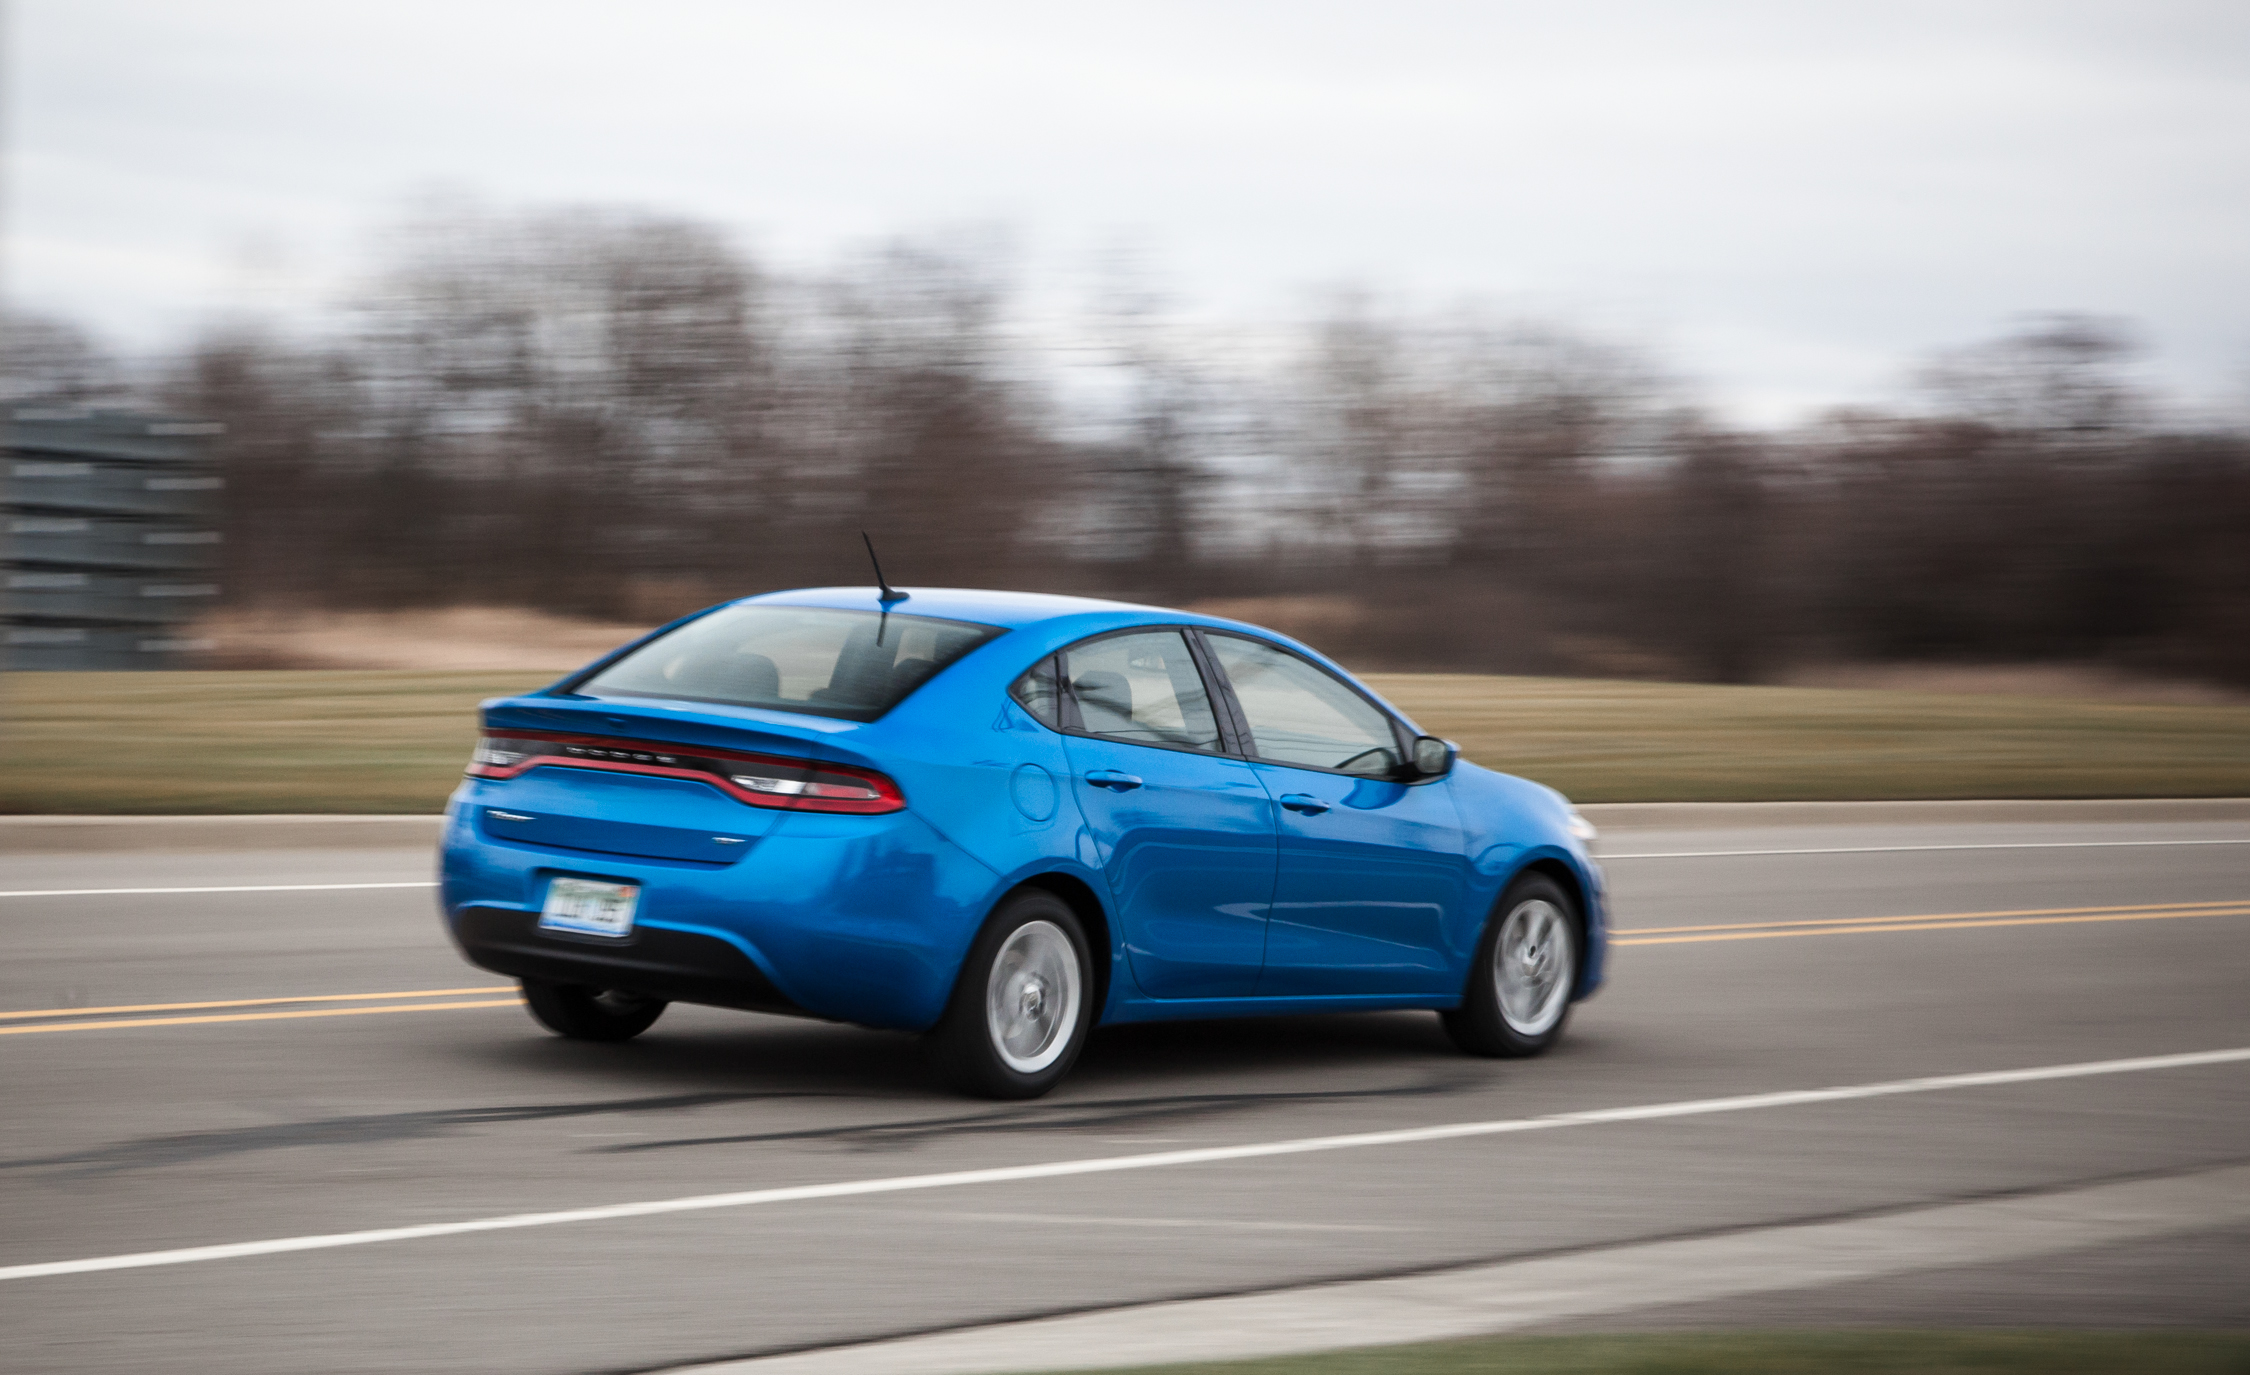 2015 Dodge Dart SXT (View 6 of 14)